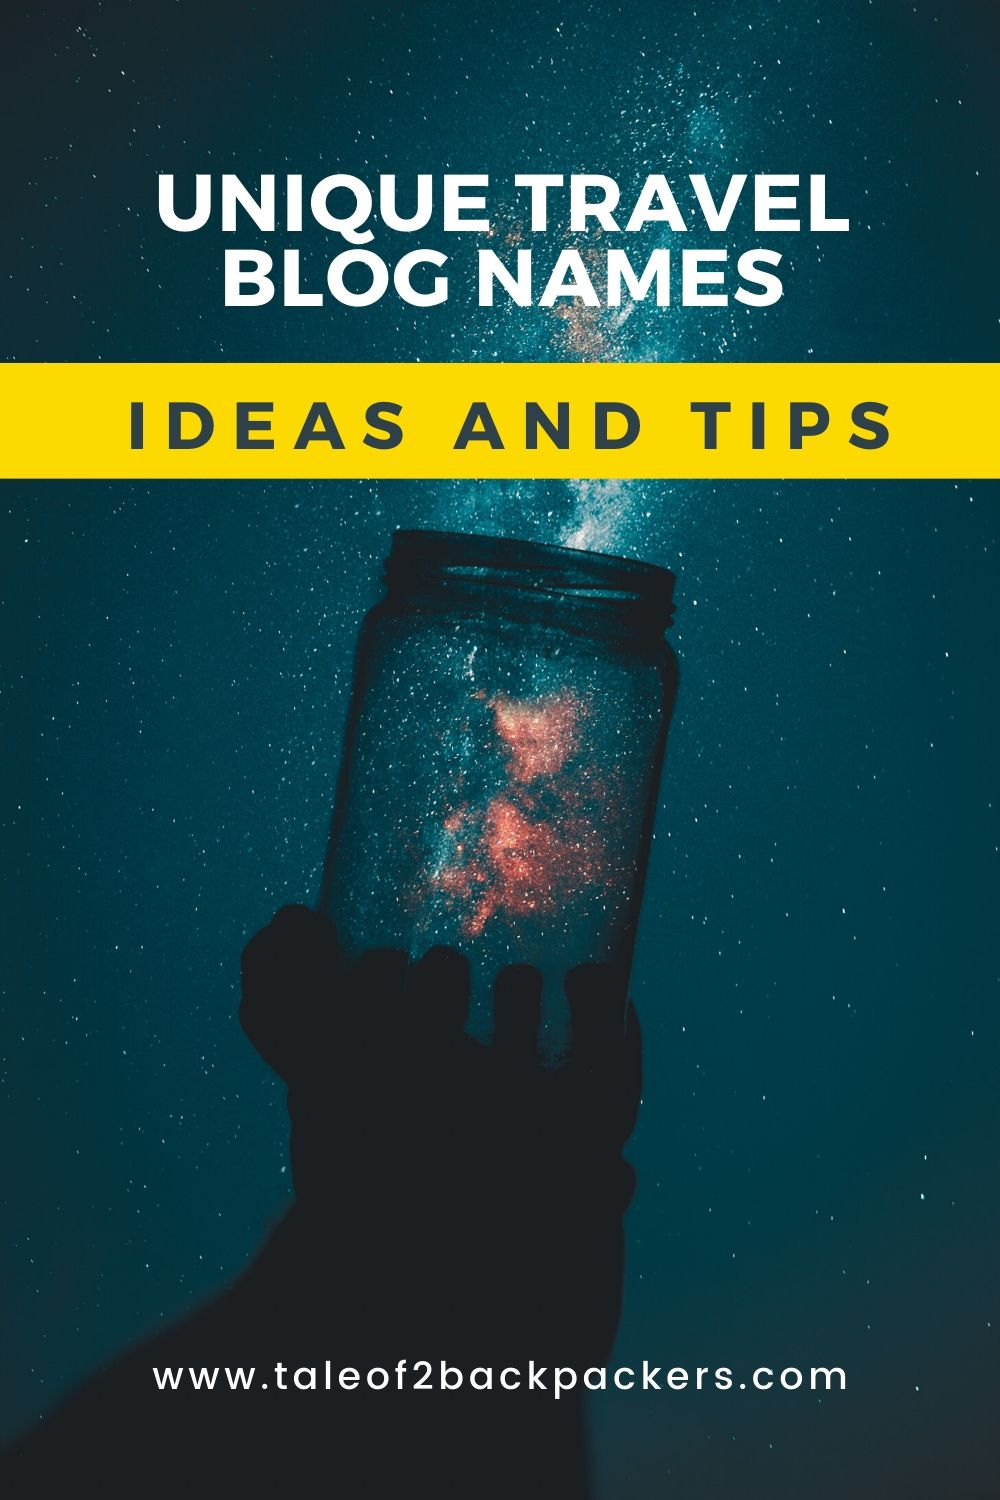 How to choose perfect travel blog names